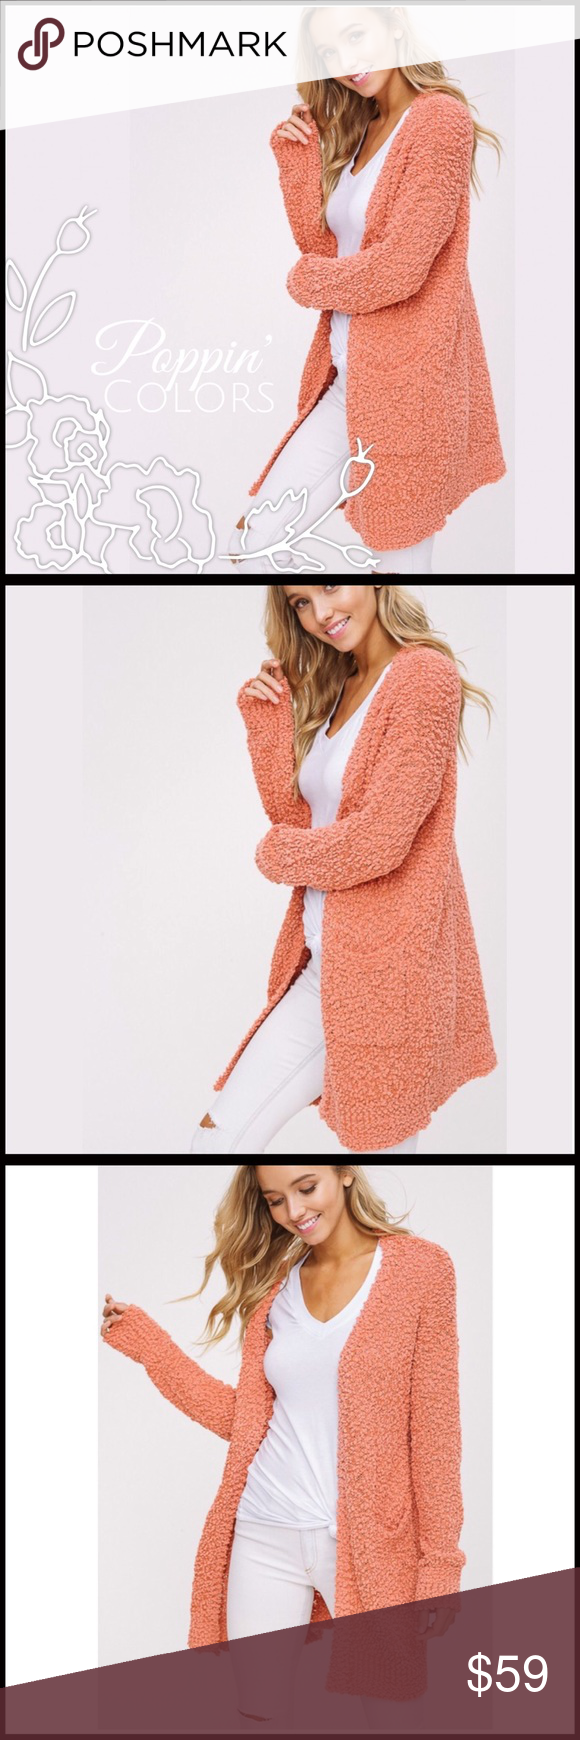 c4b11a4d162432 ... Chunky knit open cardigan - Soft popcorn texture - Drop shoulder with  long sleeves - 2 front pockets - Model is 5' 9